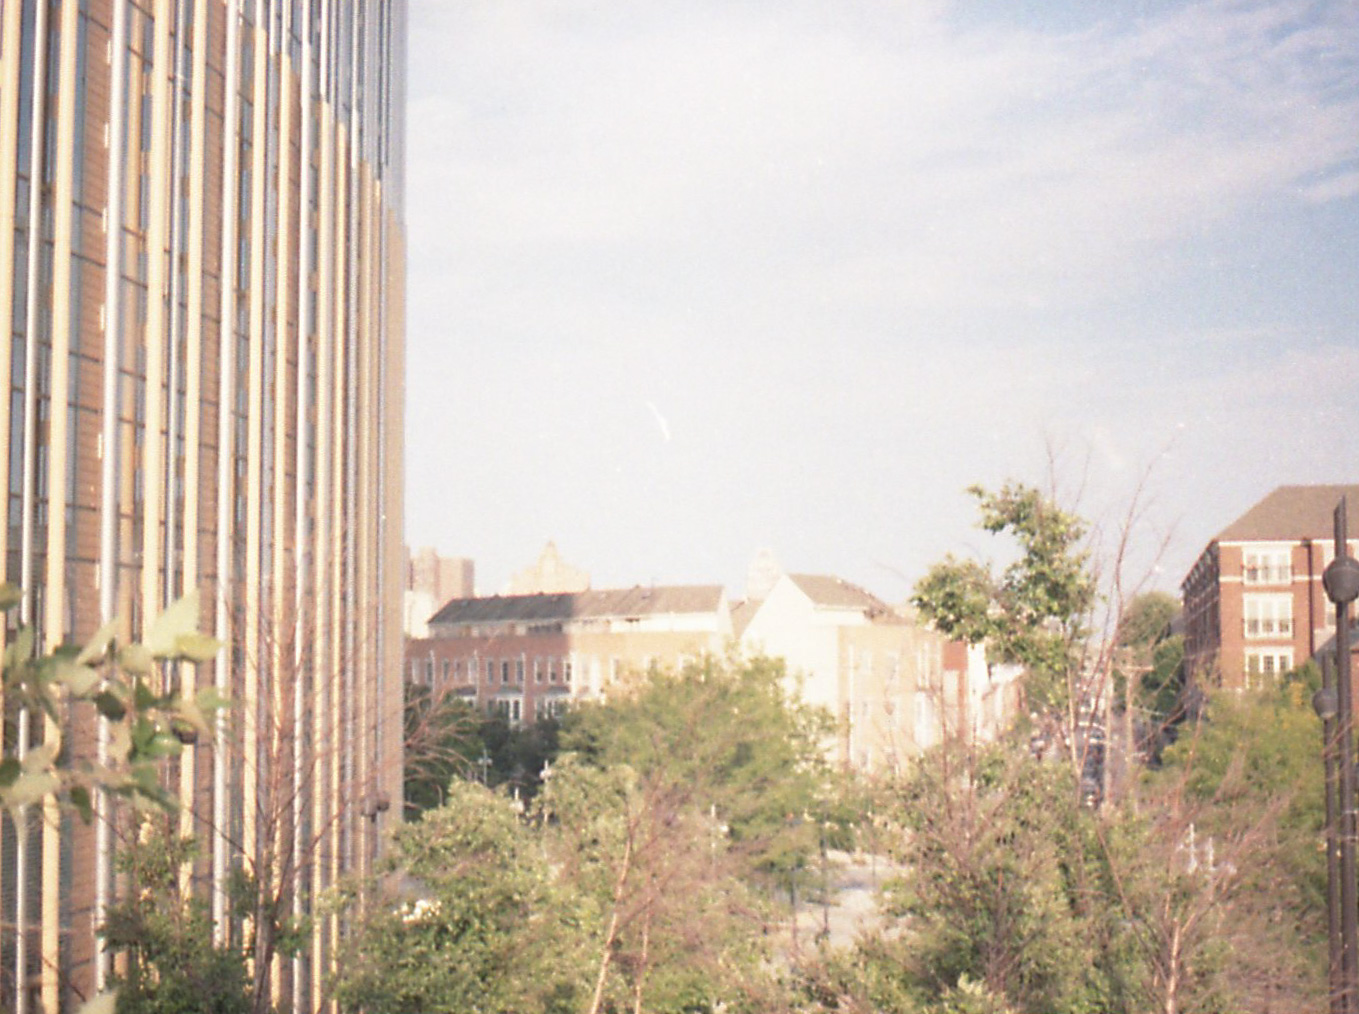 Roberts Center for Pediatric Research